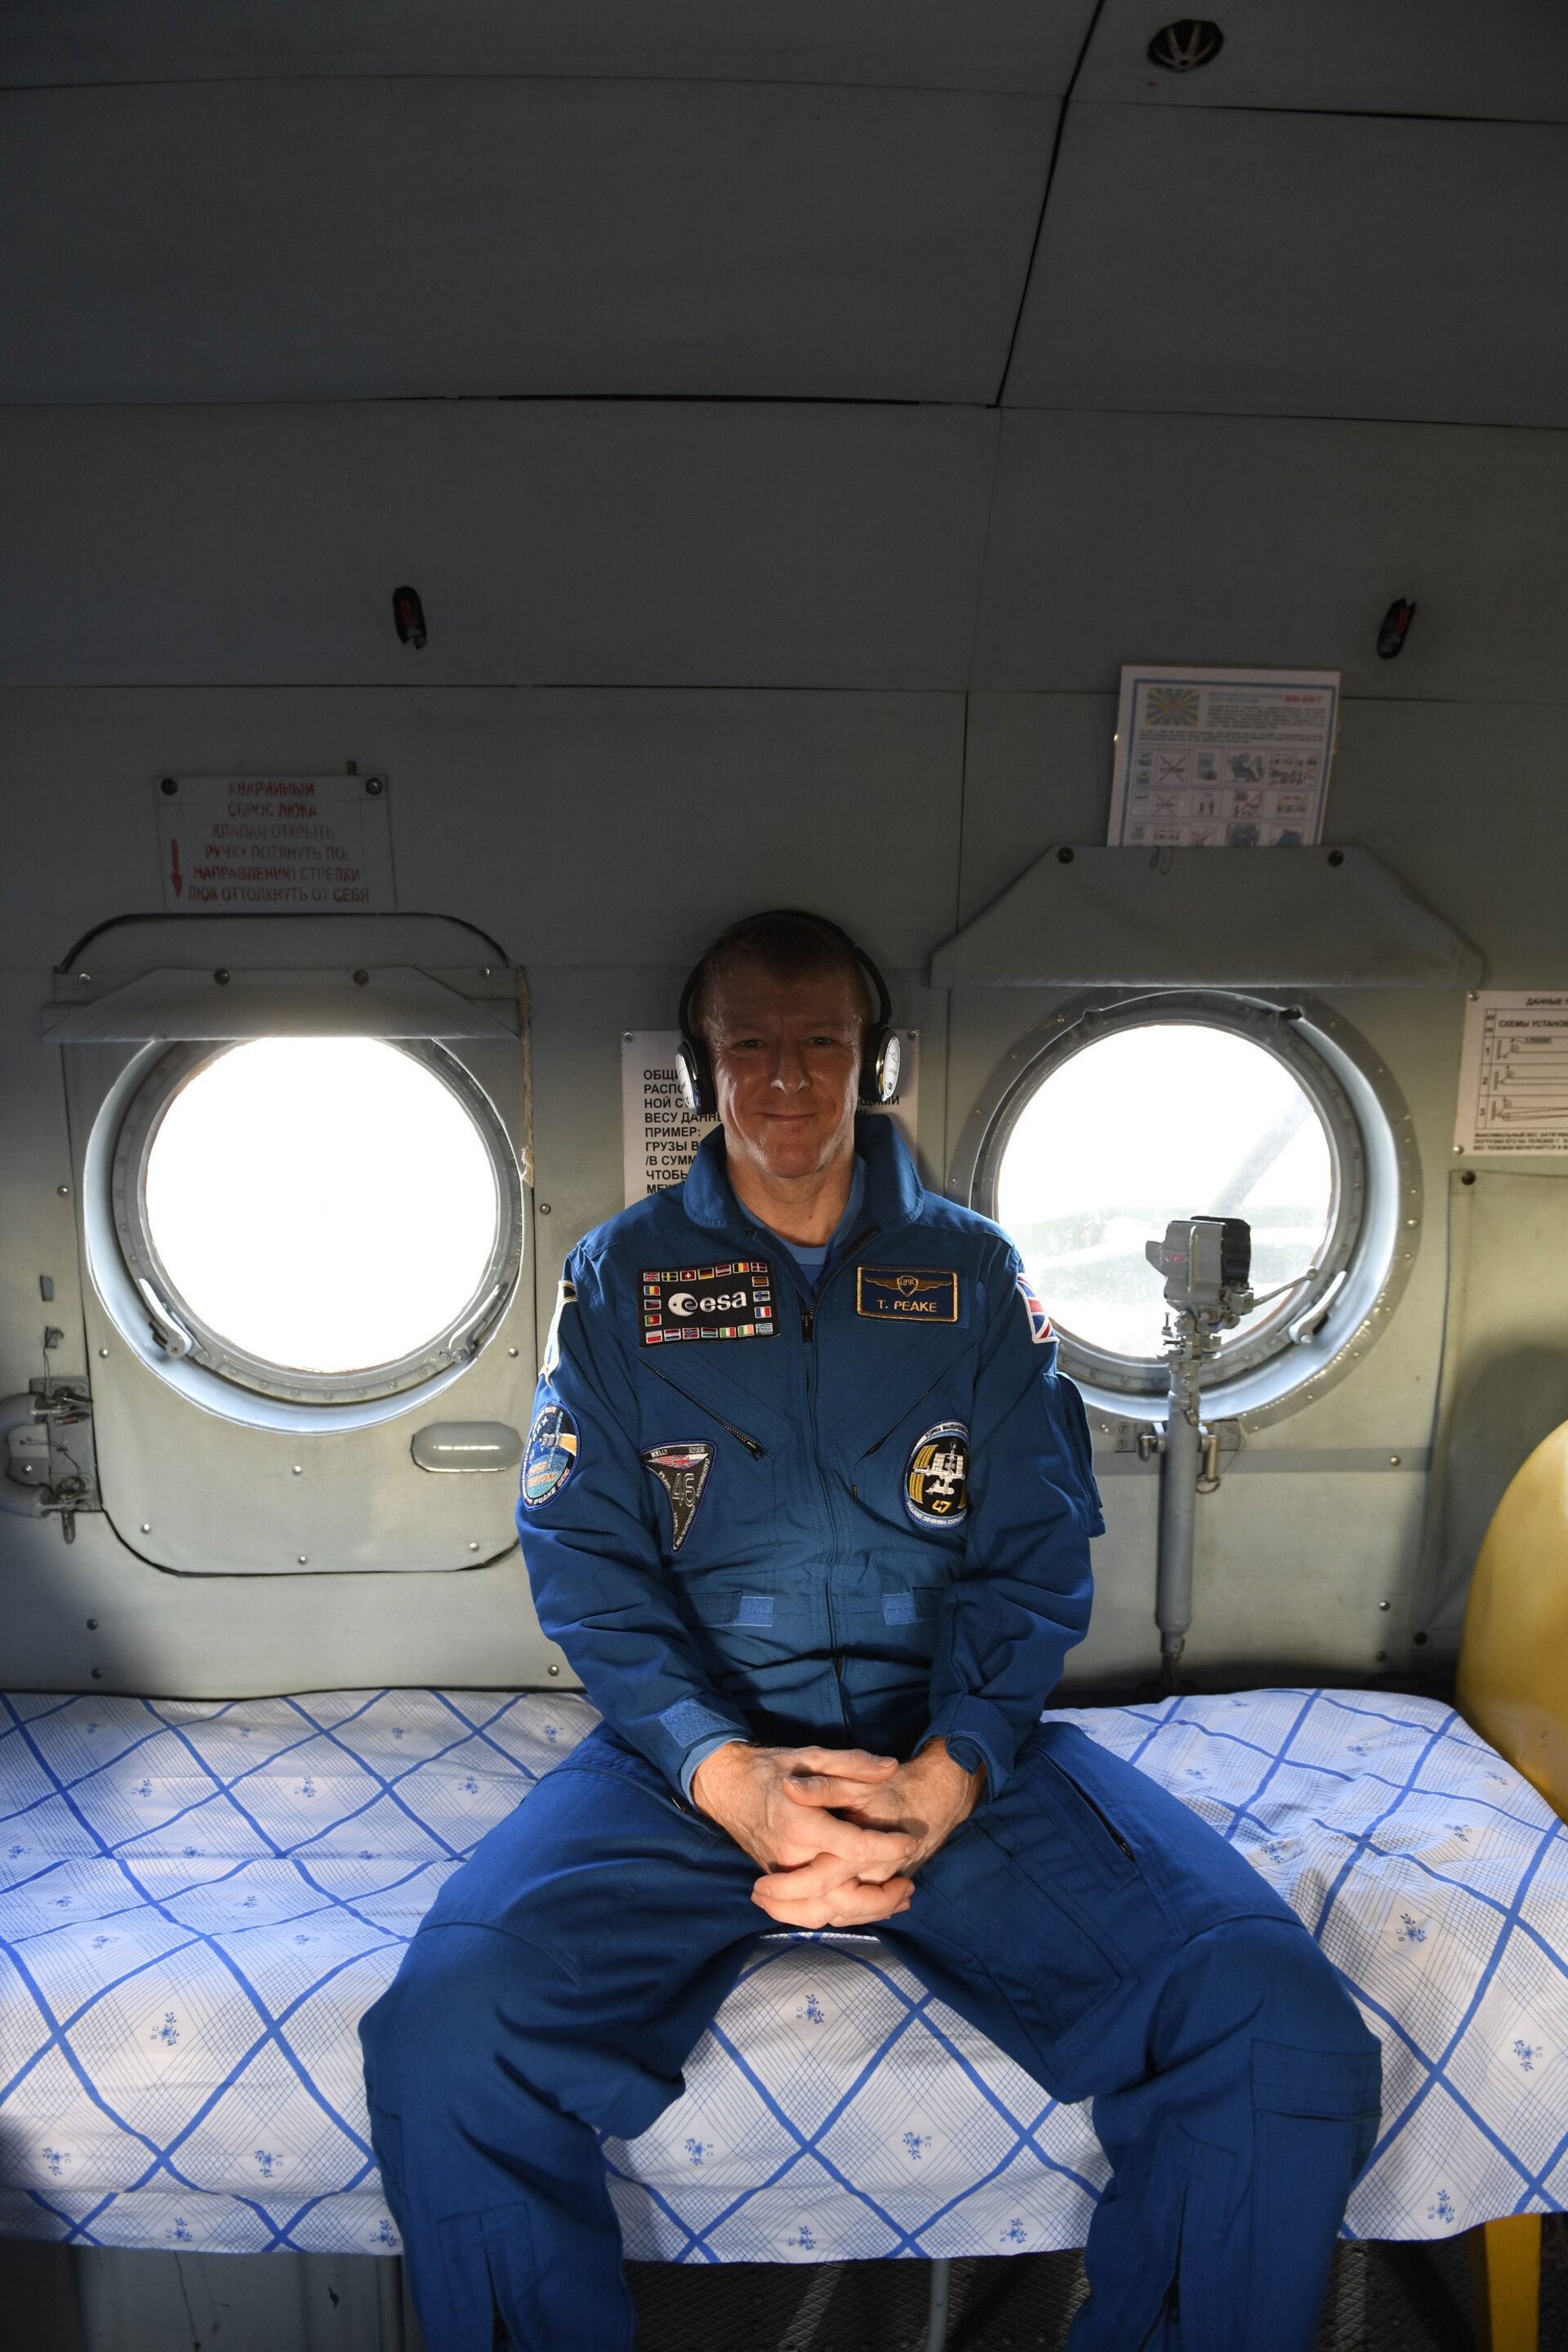 Tim Peake in a recovery helicopter shortly after landing